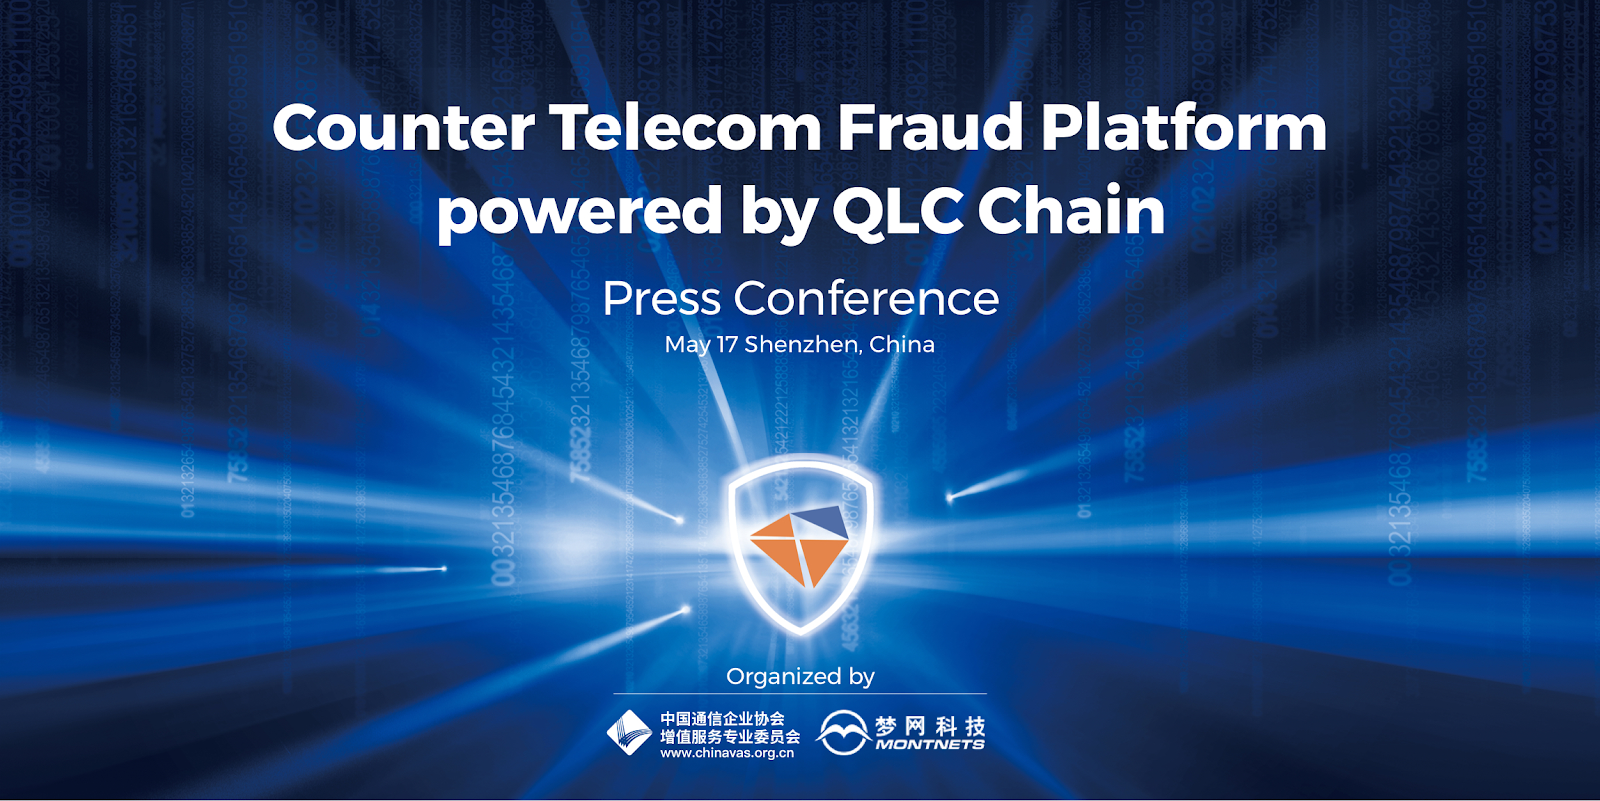 QLC Chain Launches Counter Telecom Fraud Platform